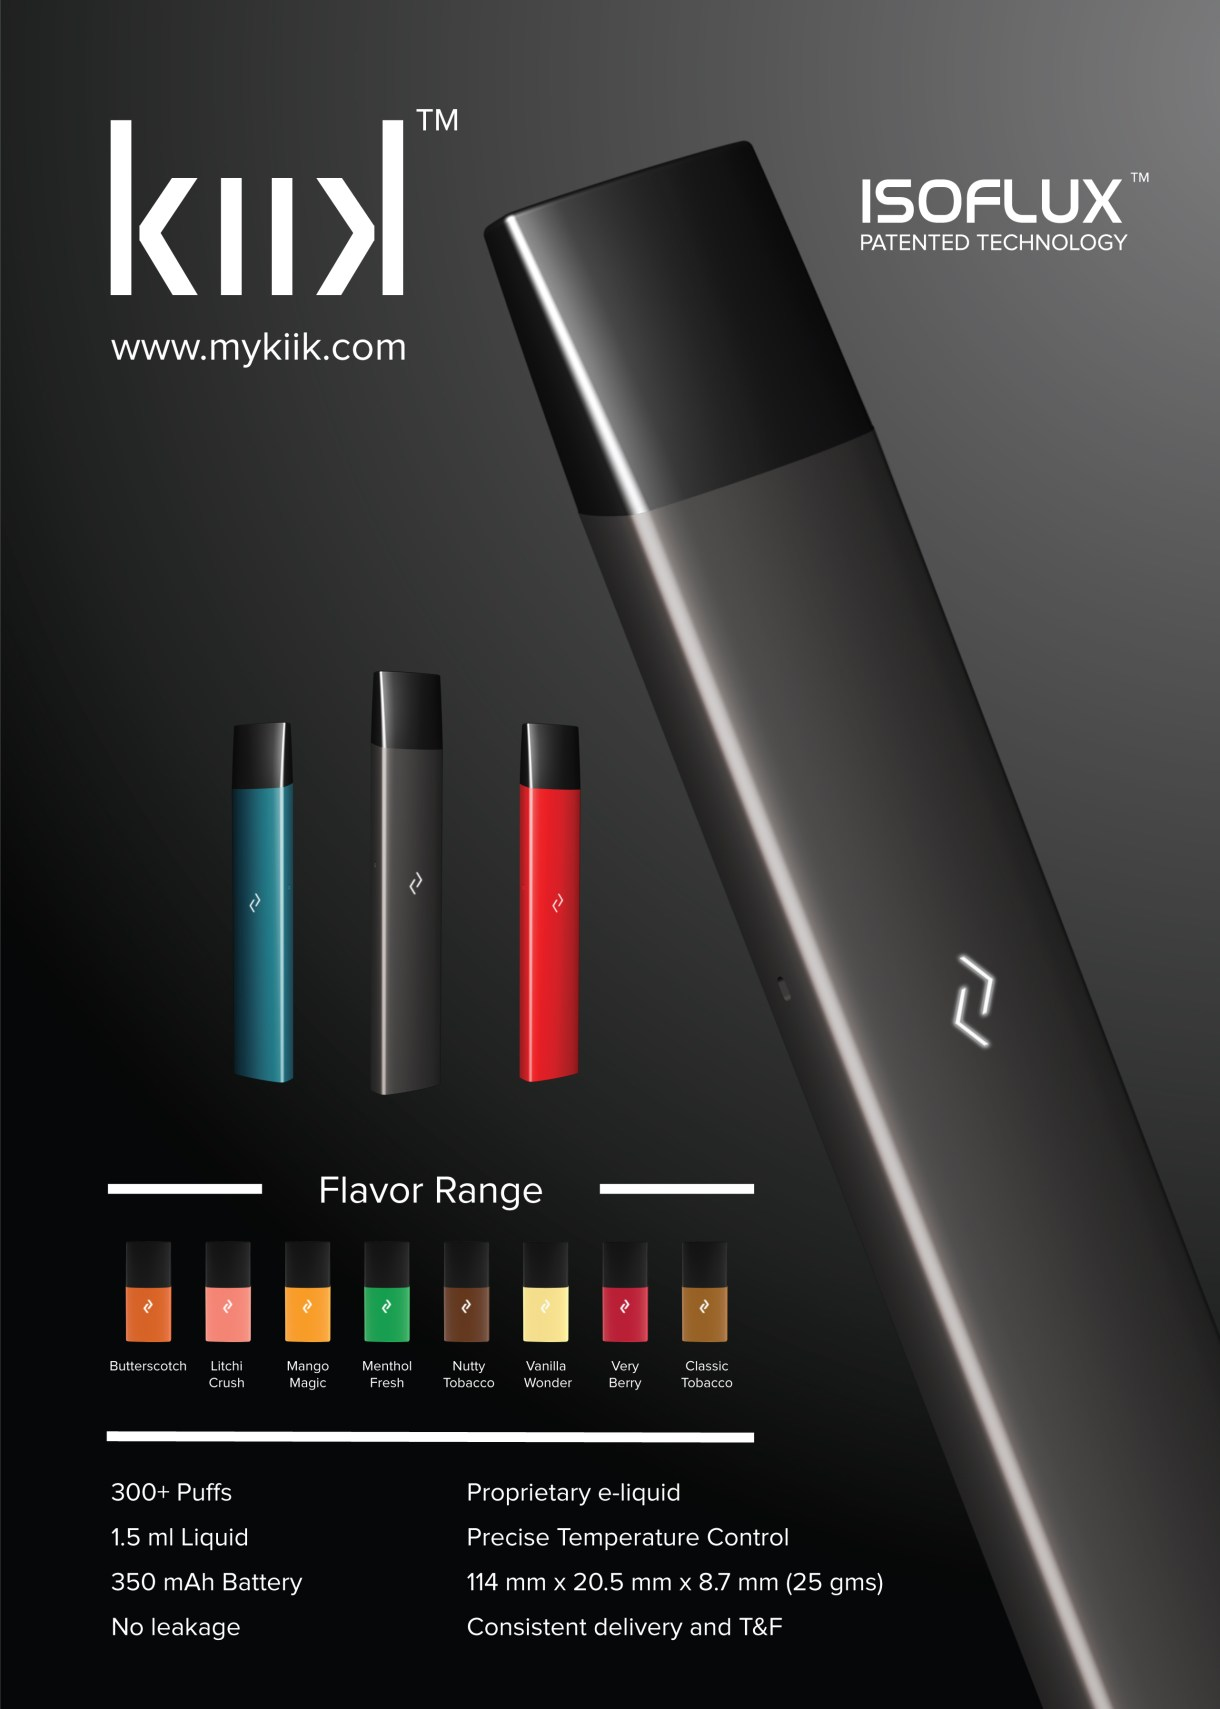 Next Vape KIIK features ISOFLUX